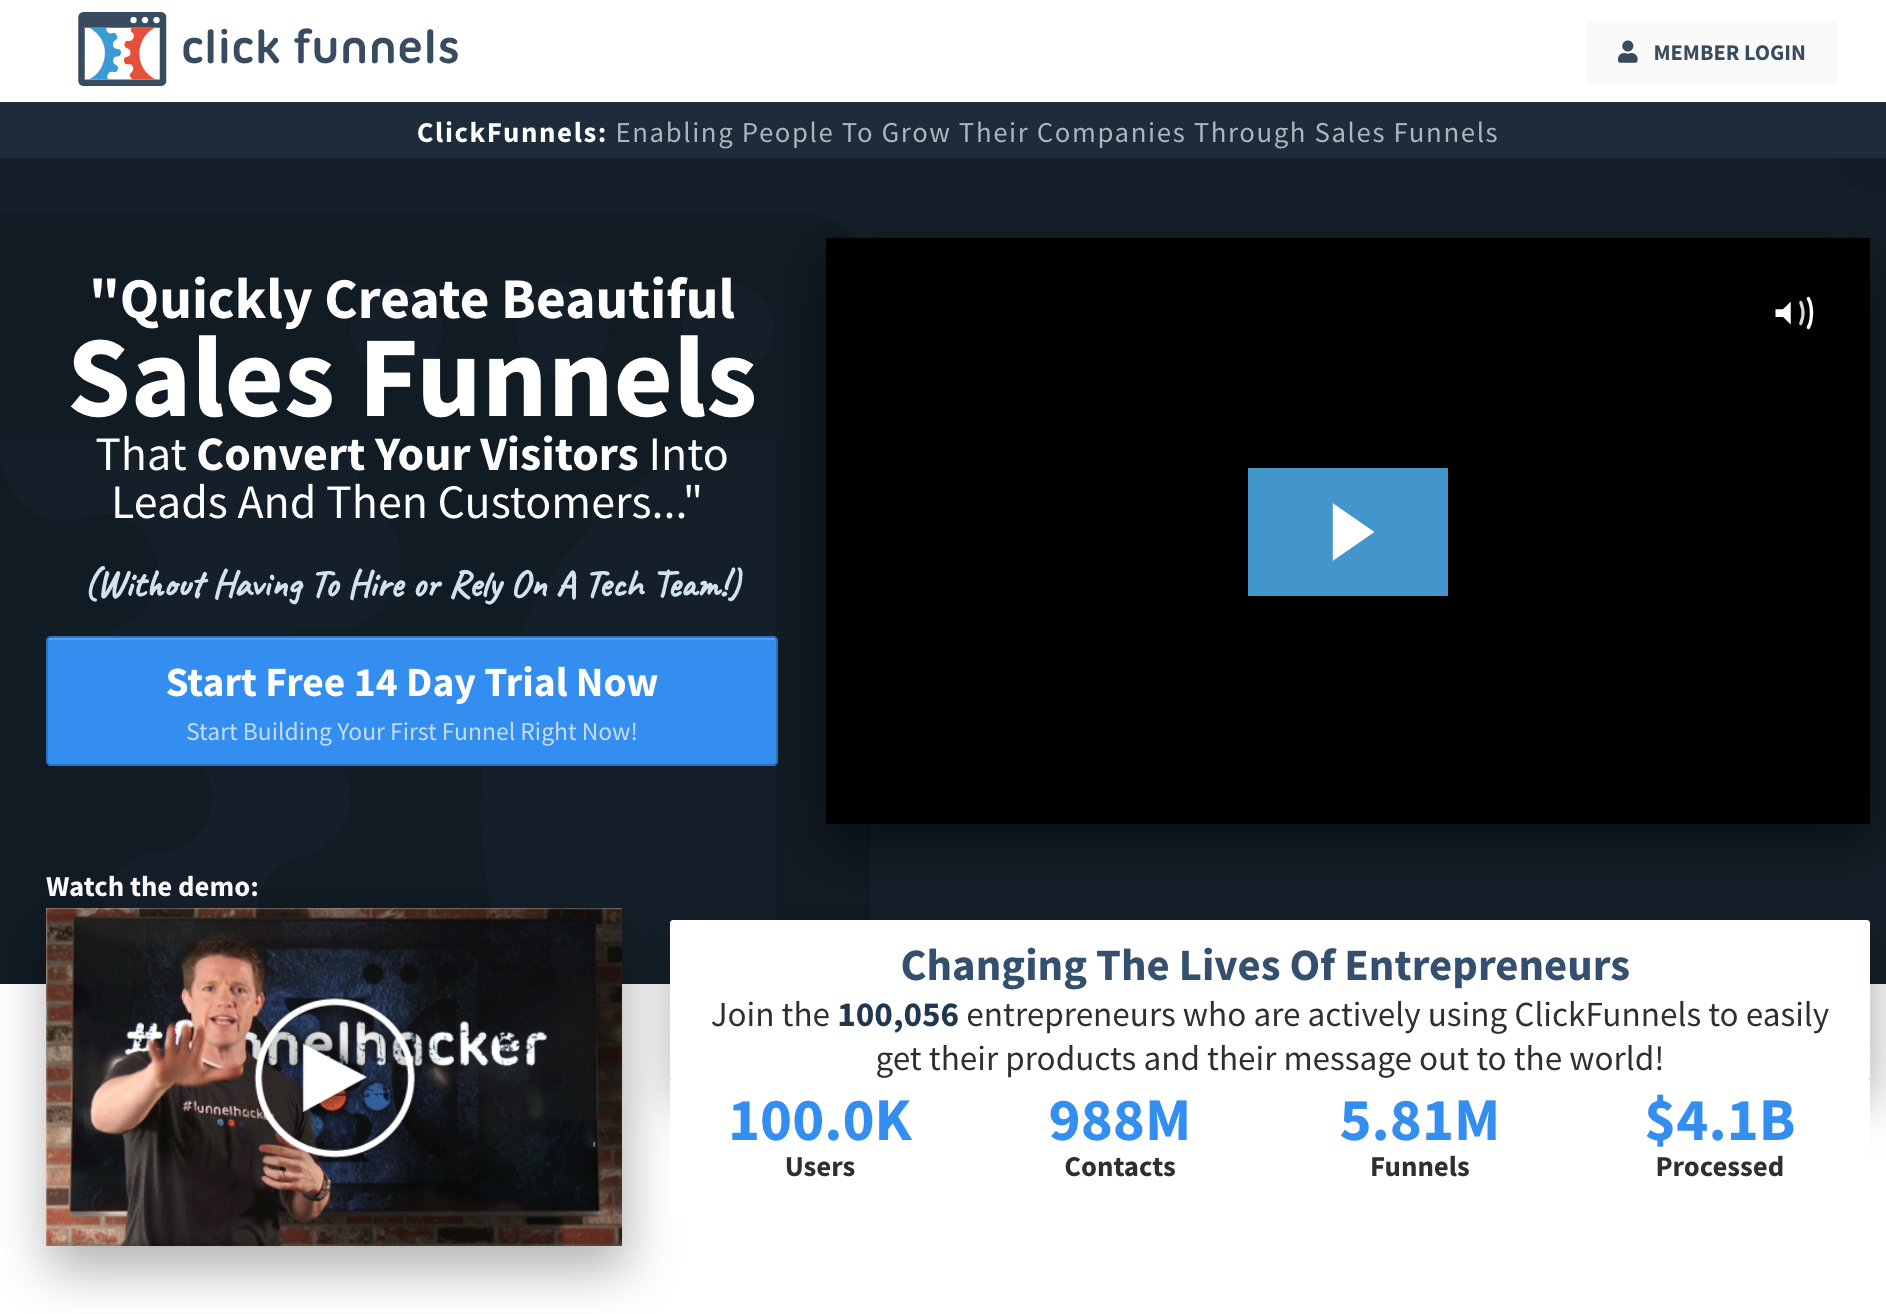 ClickFunnels™ - Marketing Funnels Made Easy